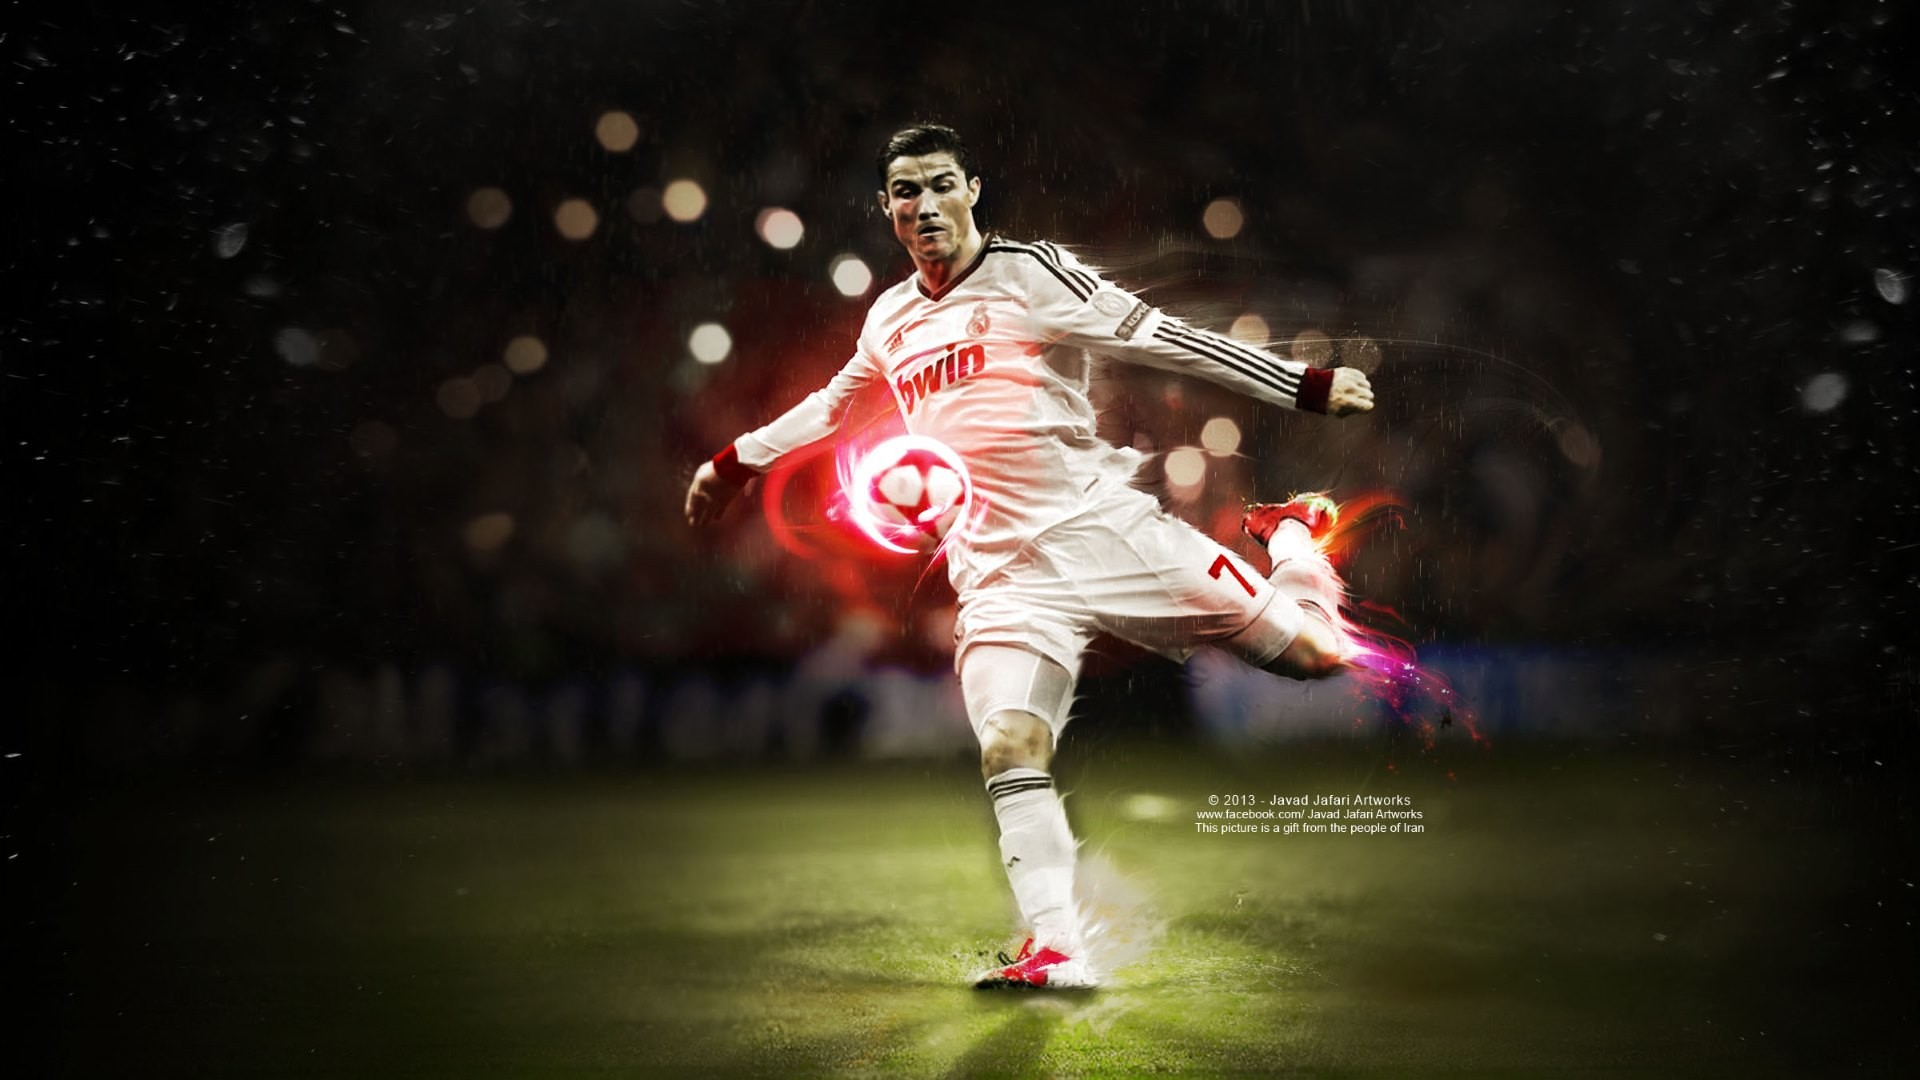 1920x1080 Cristiano Ronaldo Wallpapers 2016-2017 in HD | Soccer | Football